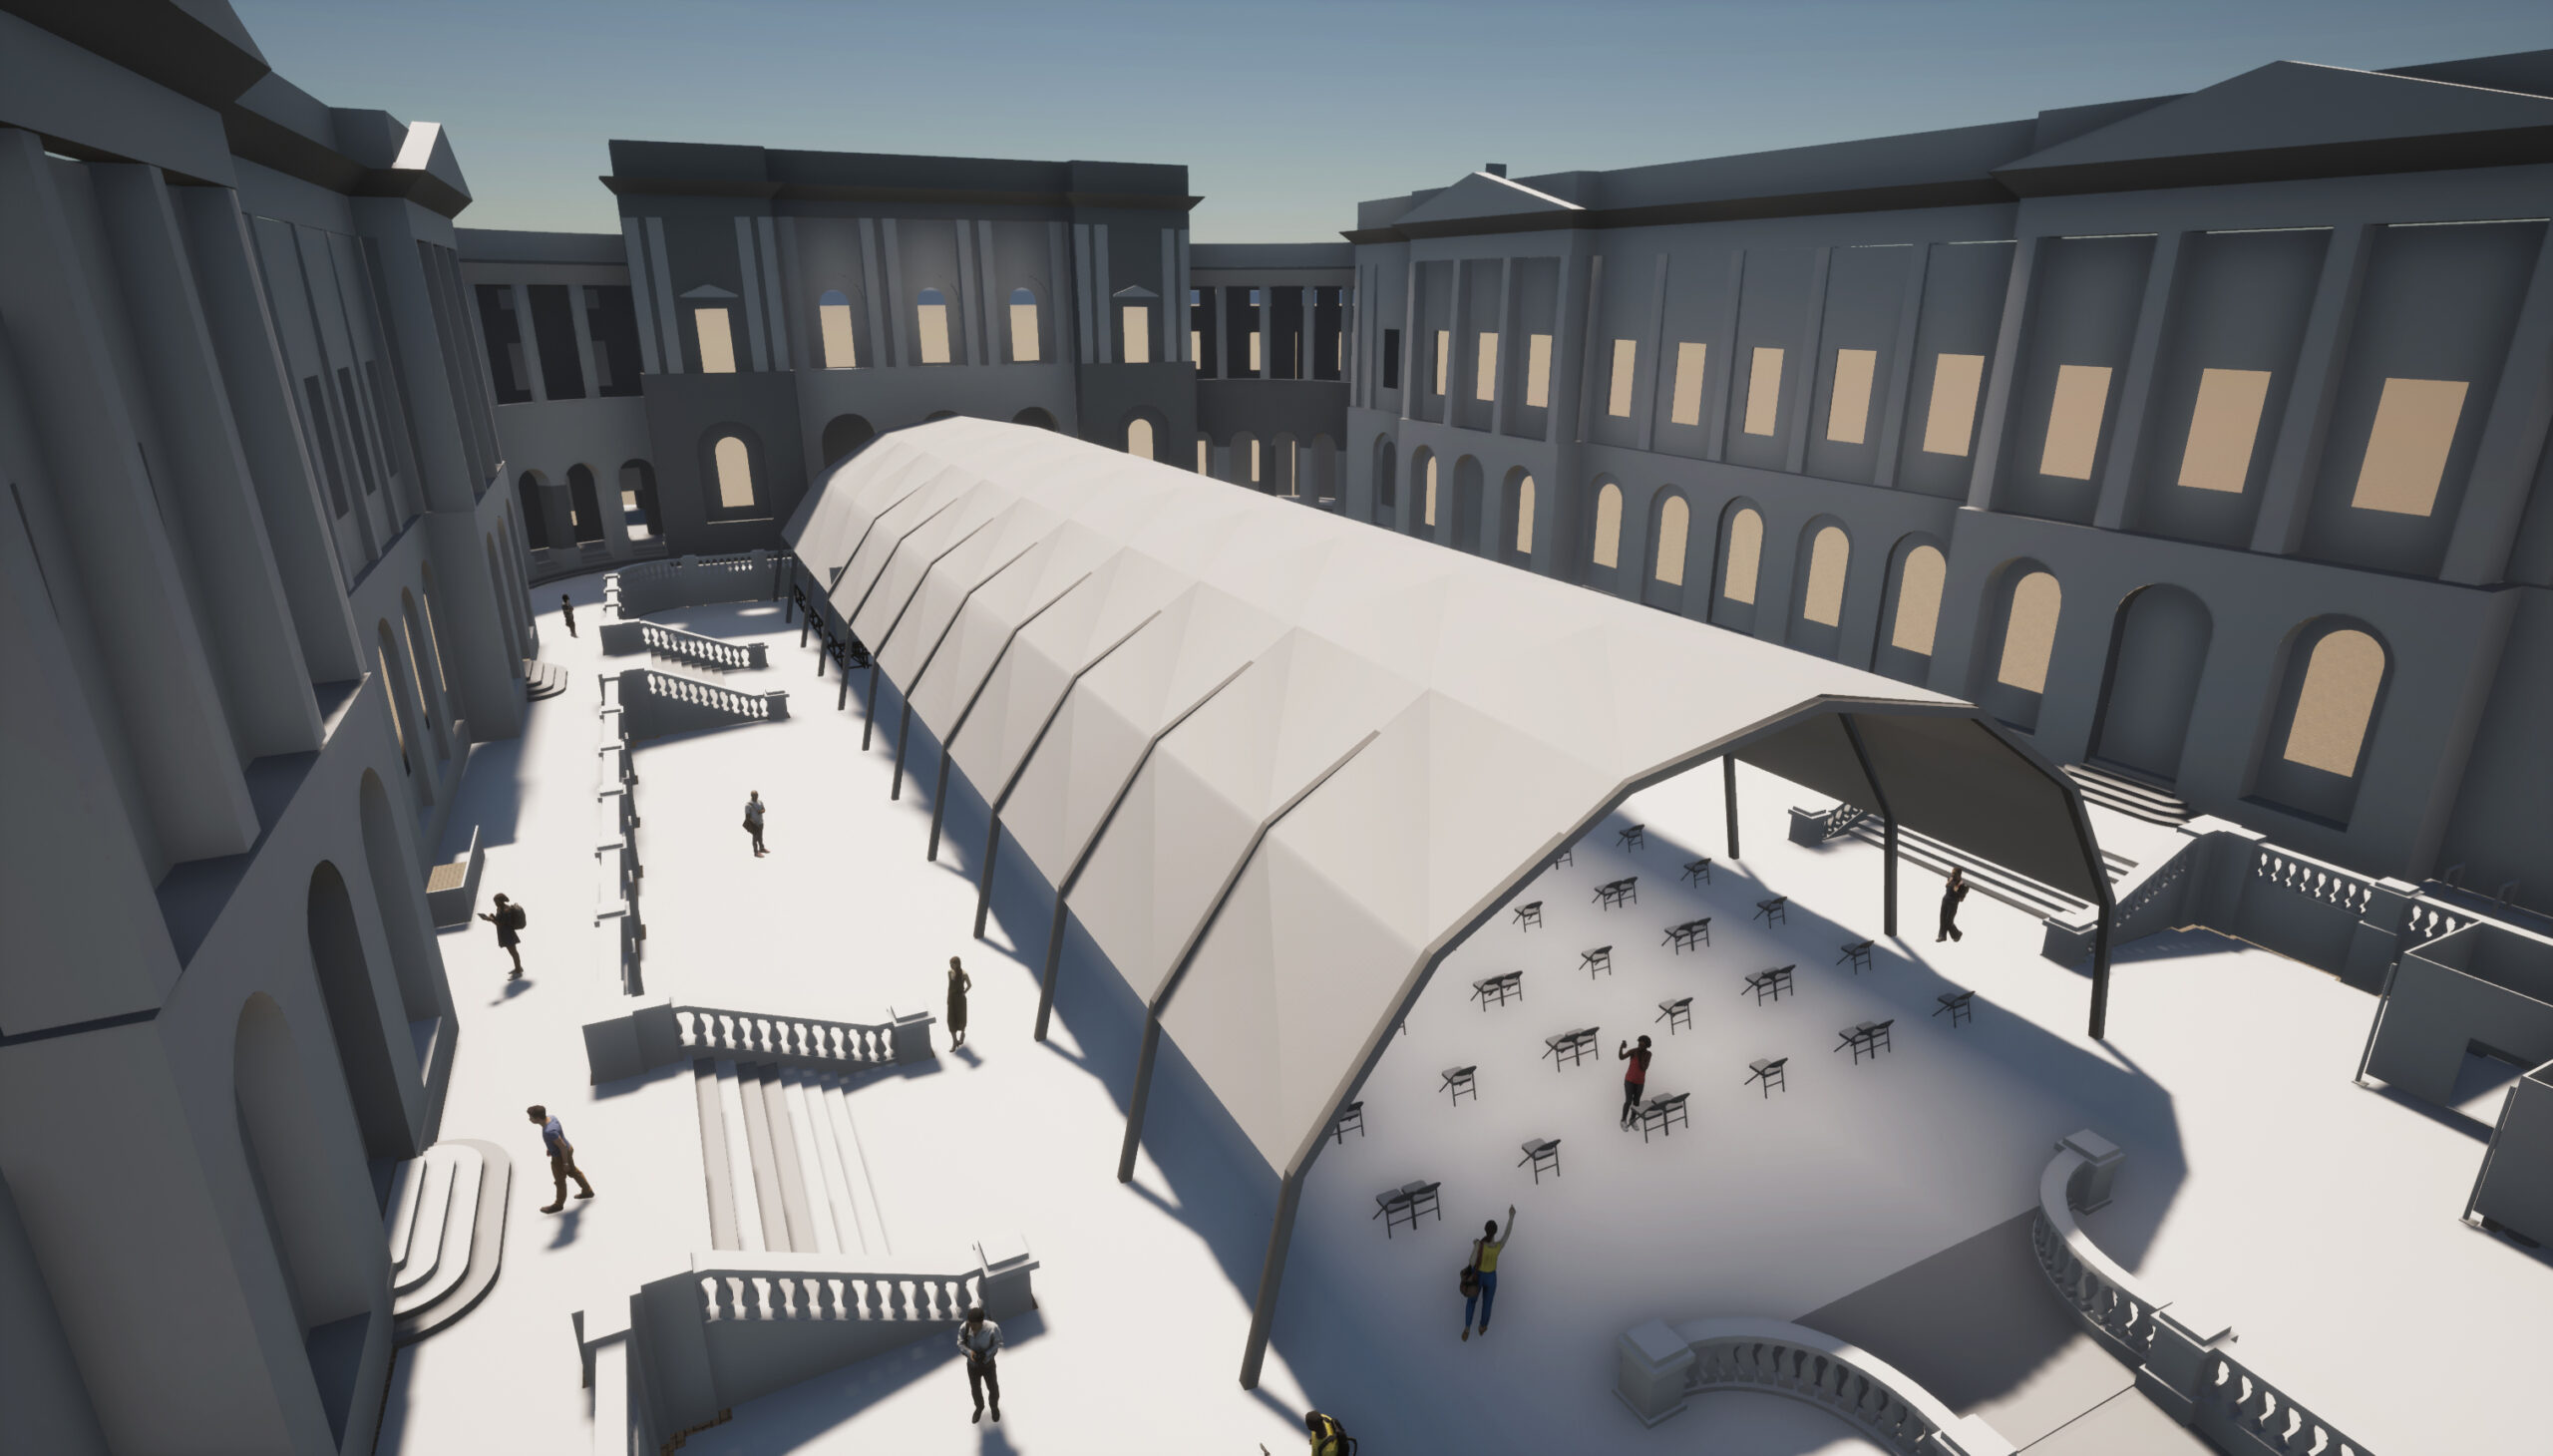 3D impression of a performance venue to be used at the Old CollegeQuad